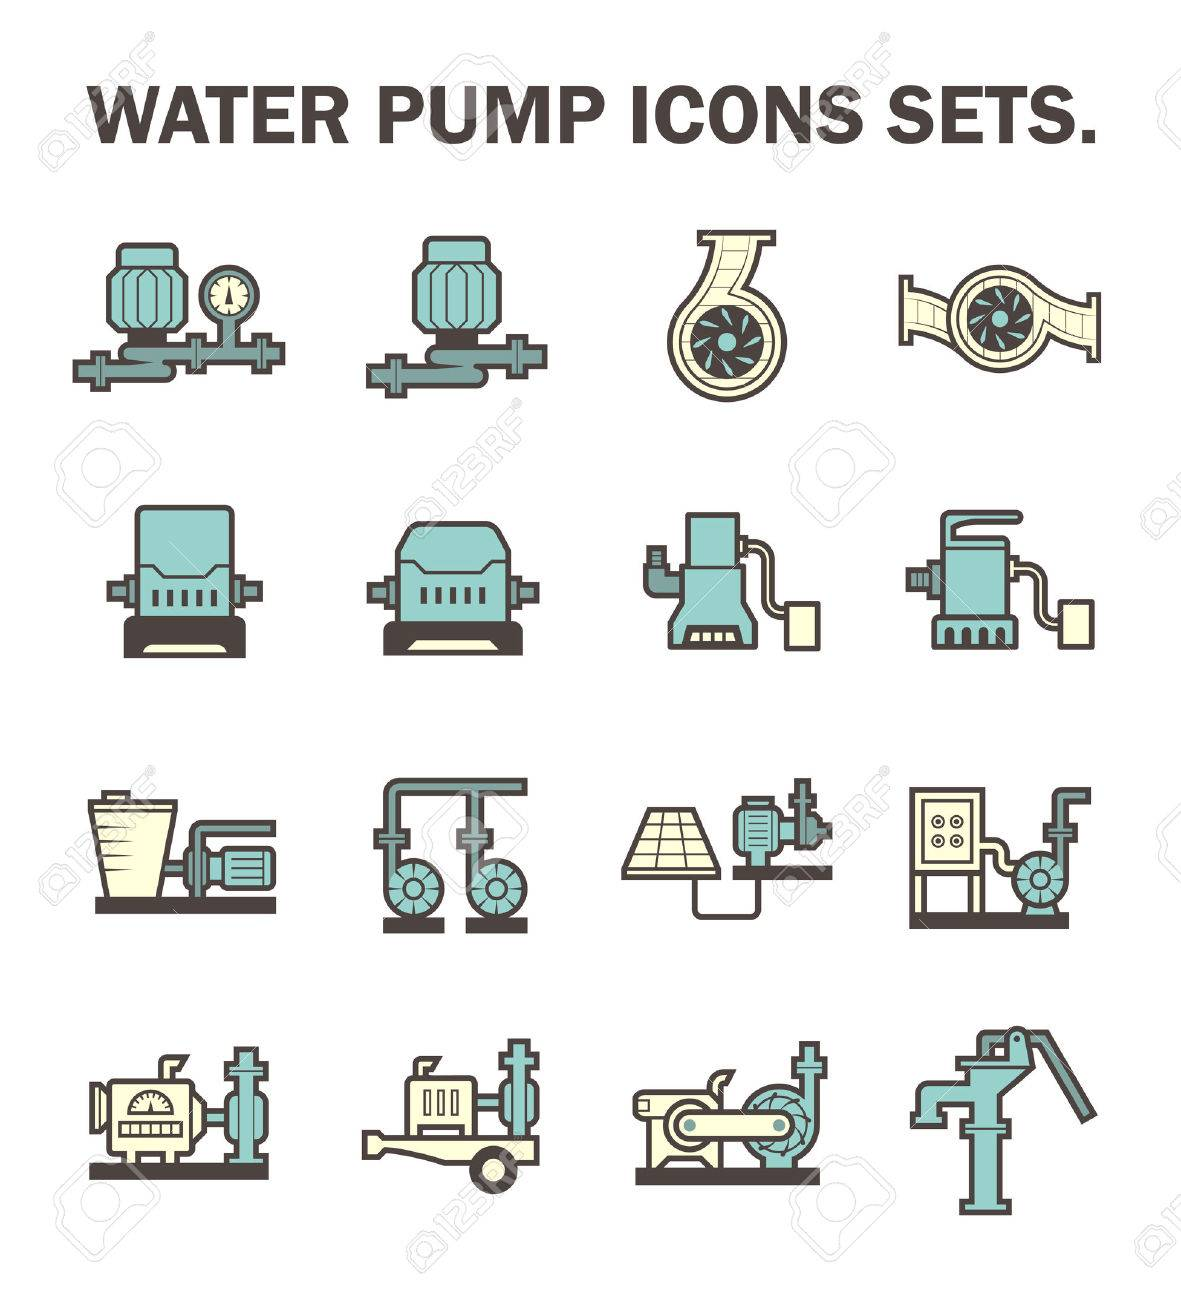 Water pump icons sets. - 54302776